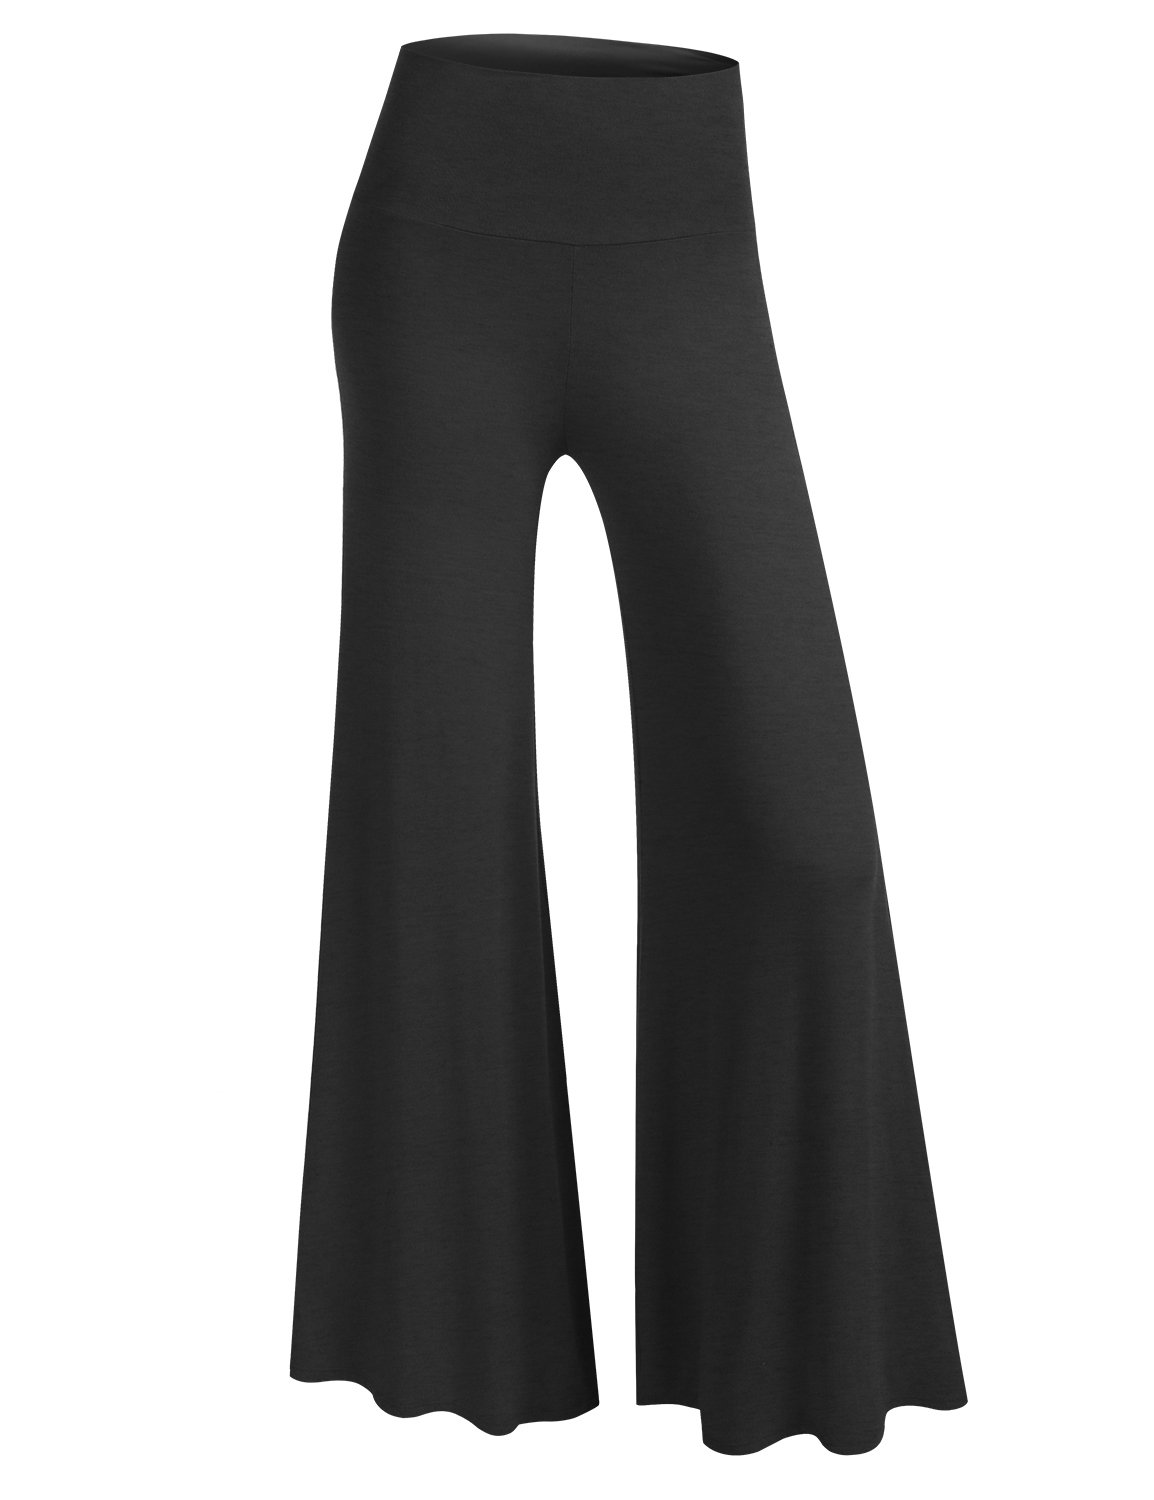 BIADANI Women Classic Soft Chic Wide Leg Foldover Band Palazzo Pants Charcoal 1X-Large